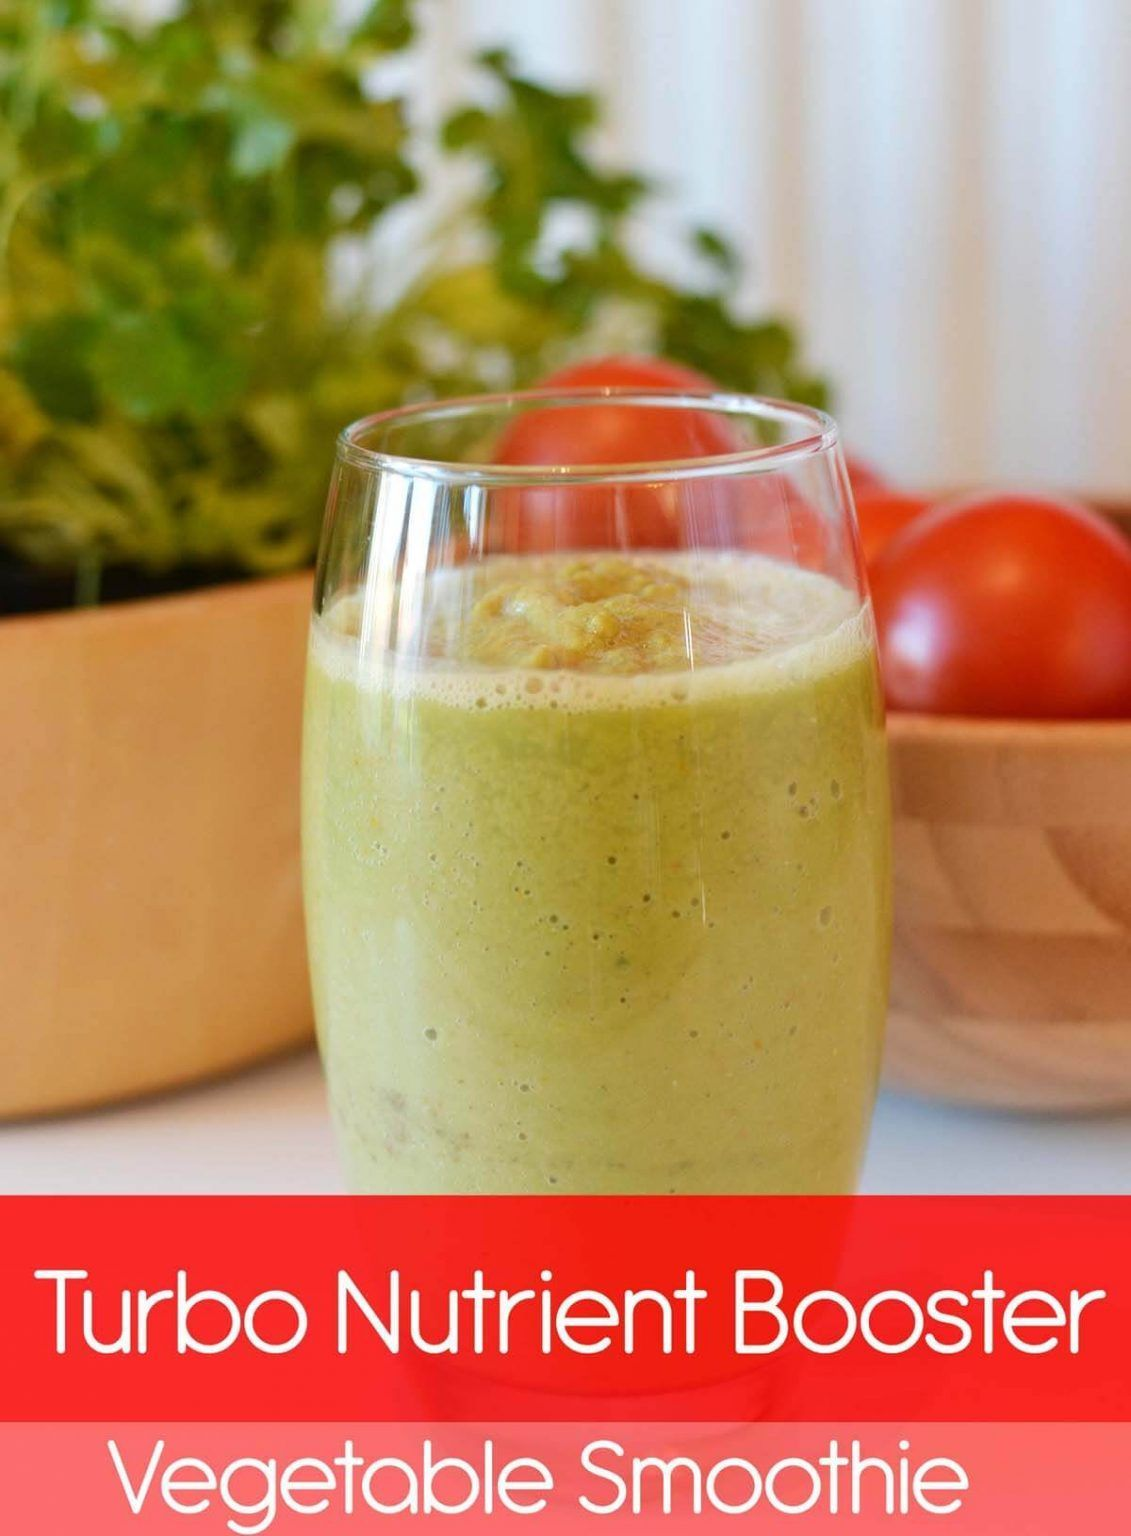 Turbo Nutrient Booster Vegetable Smoothie Vitamin